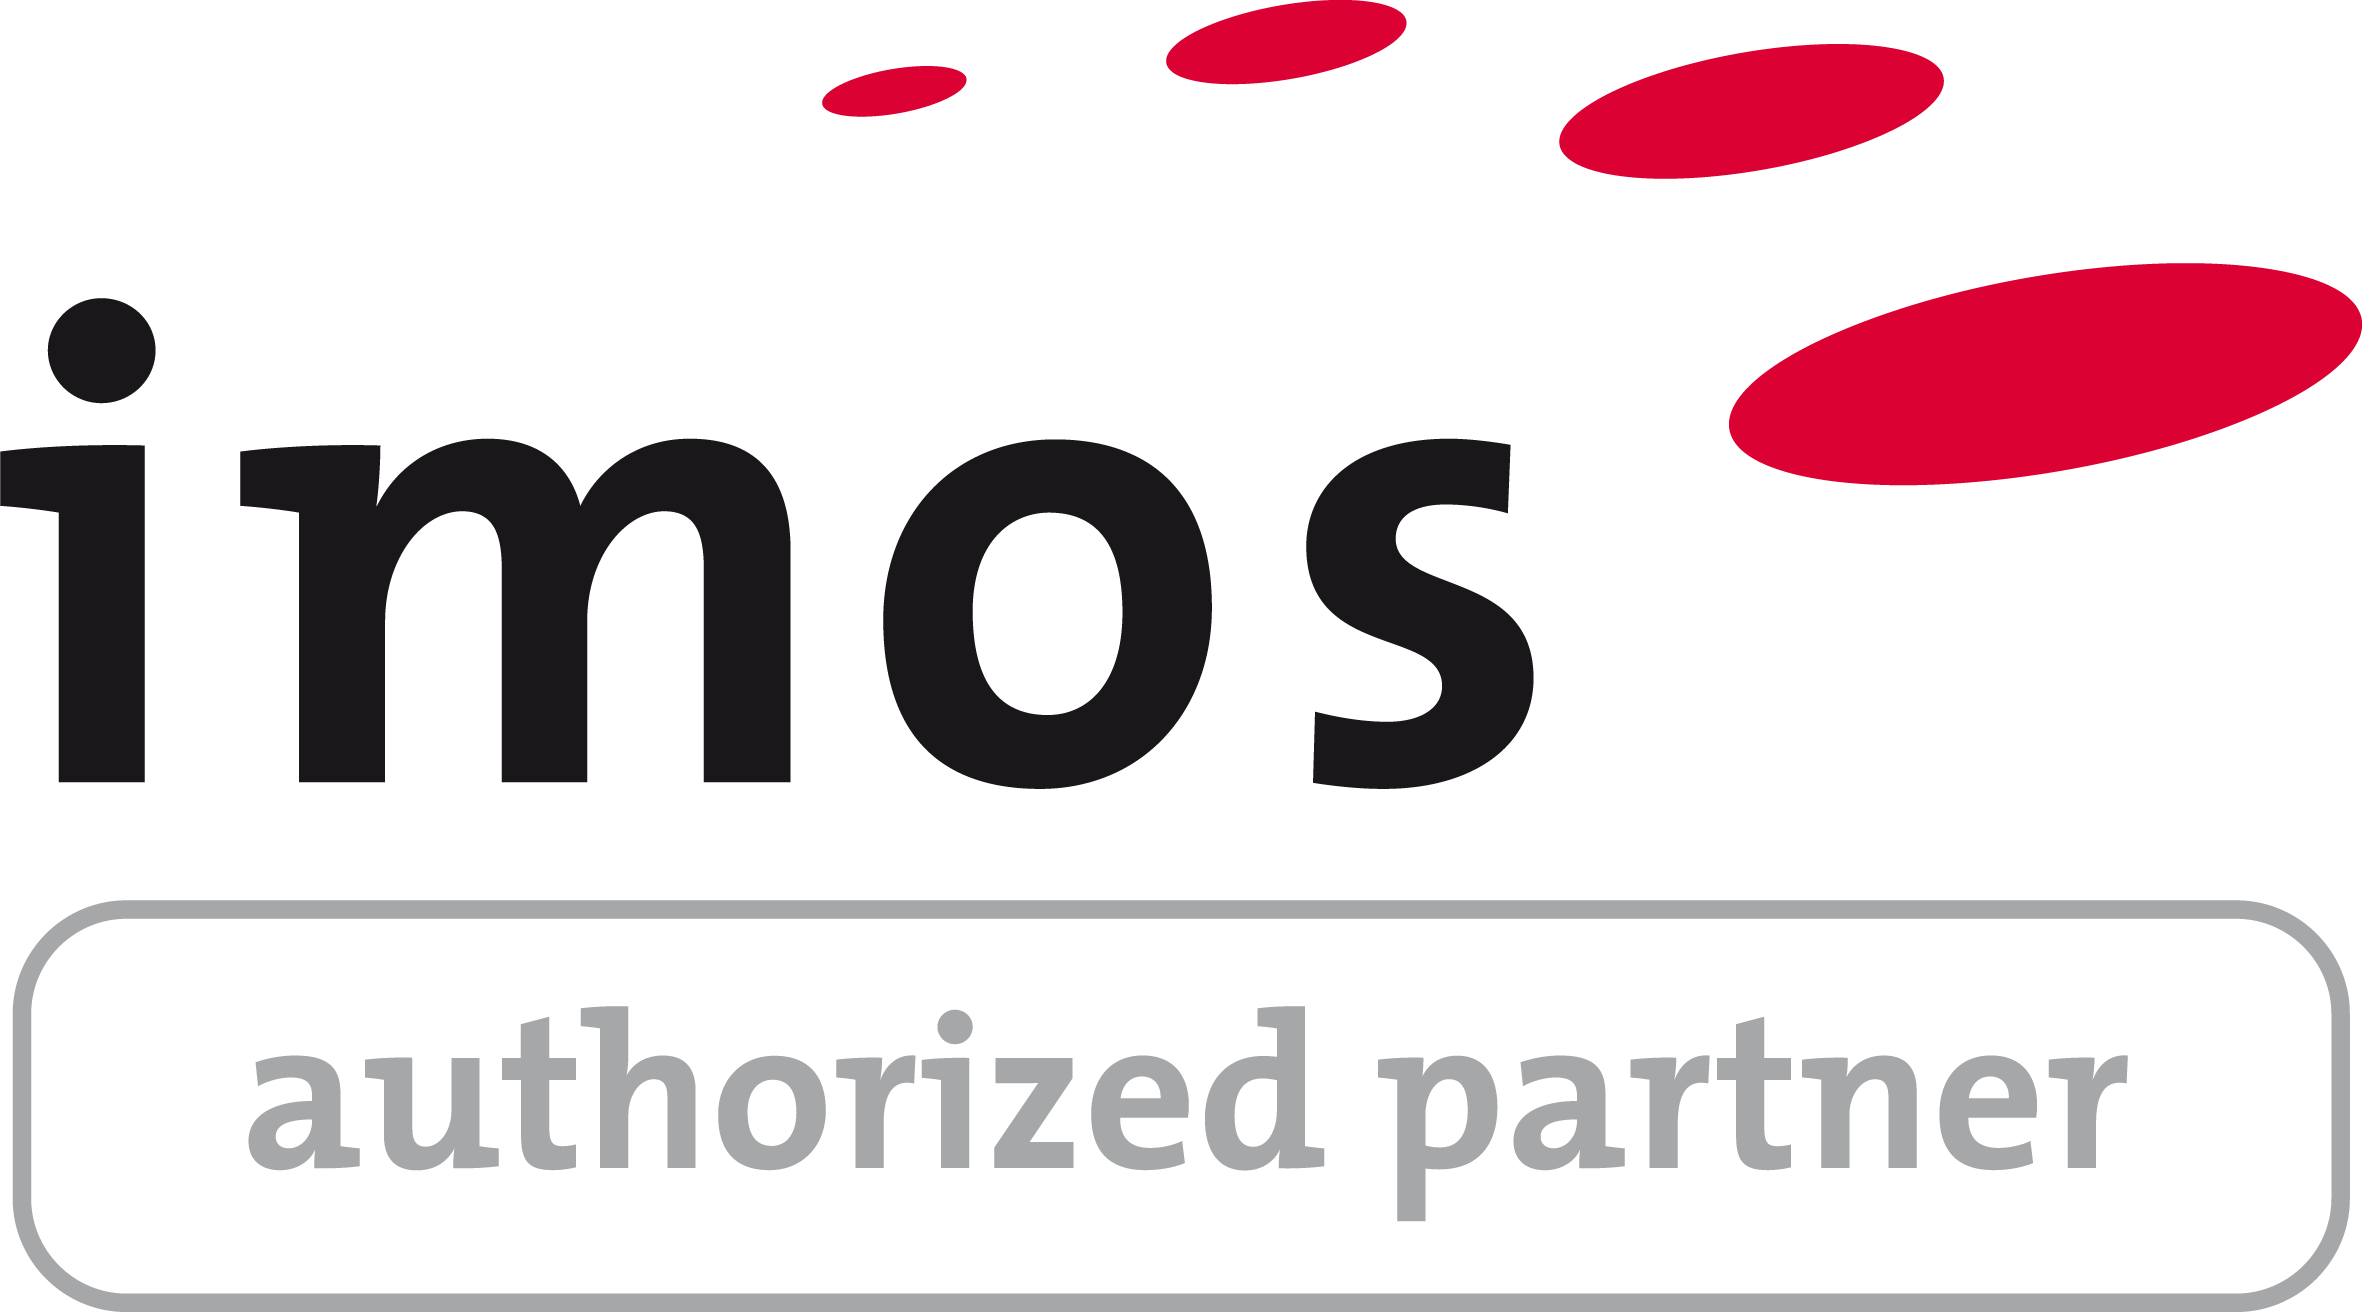 Wood Software s.r.o. - imos AG authorized partner